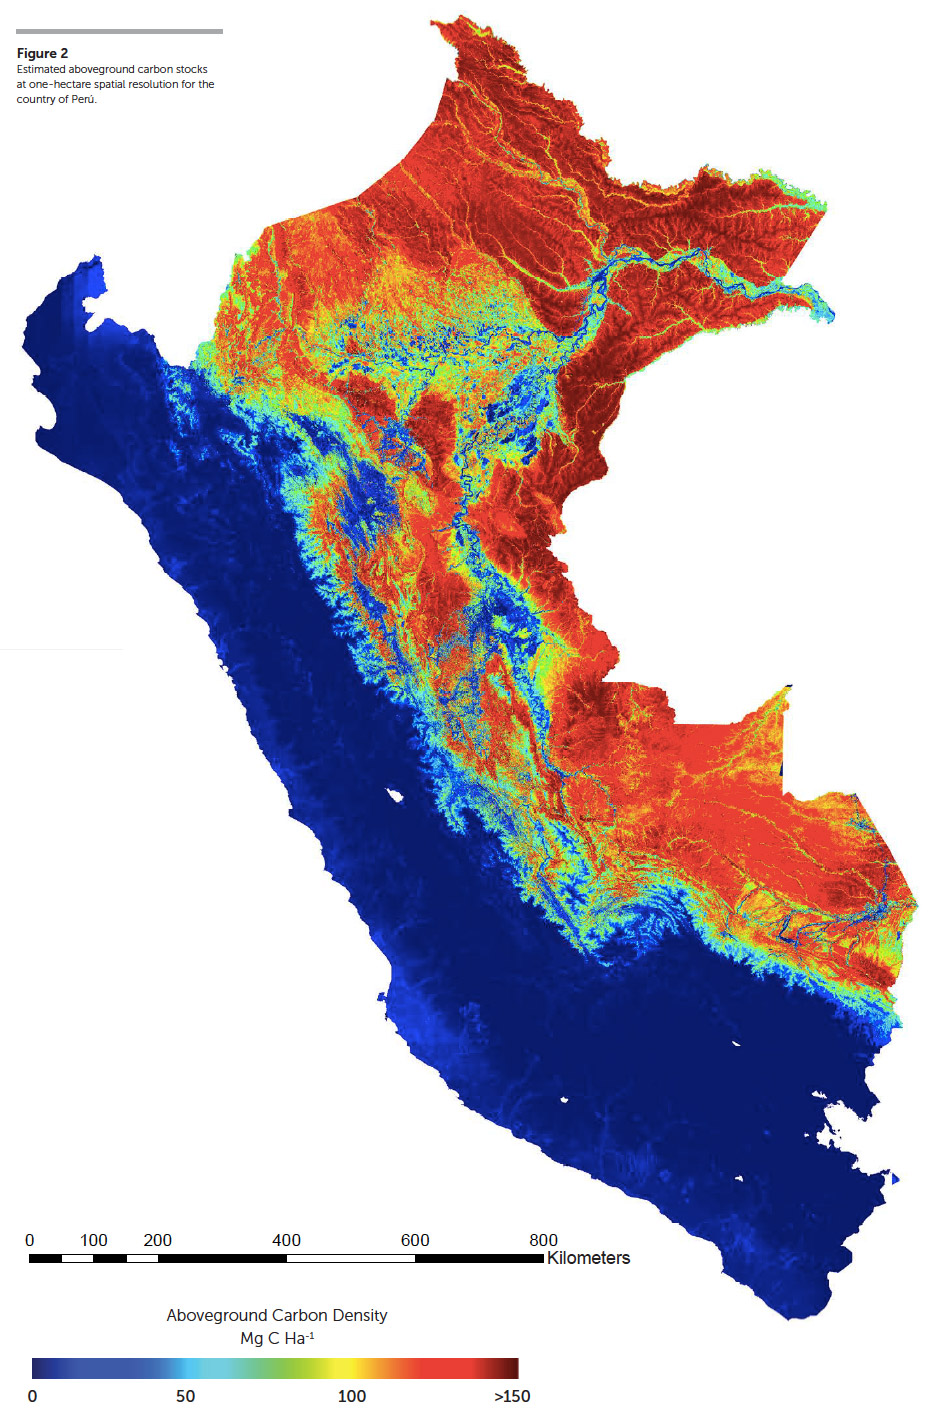 Stunning HighResolution Map Reveals Secrets Of Perus Forests - Perus map